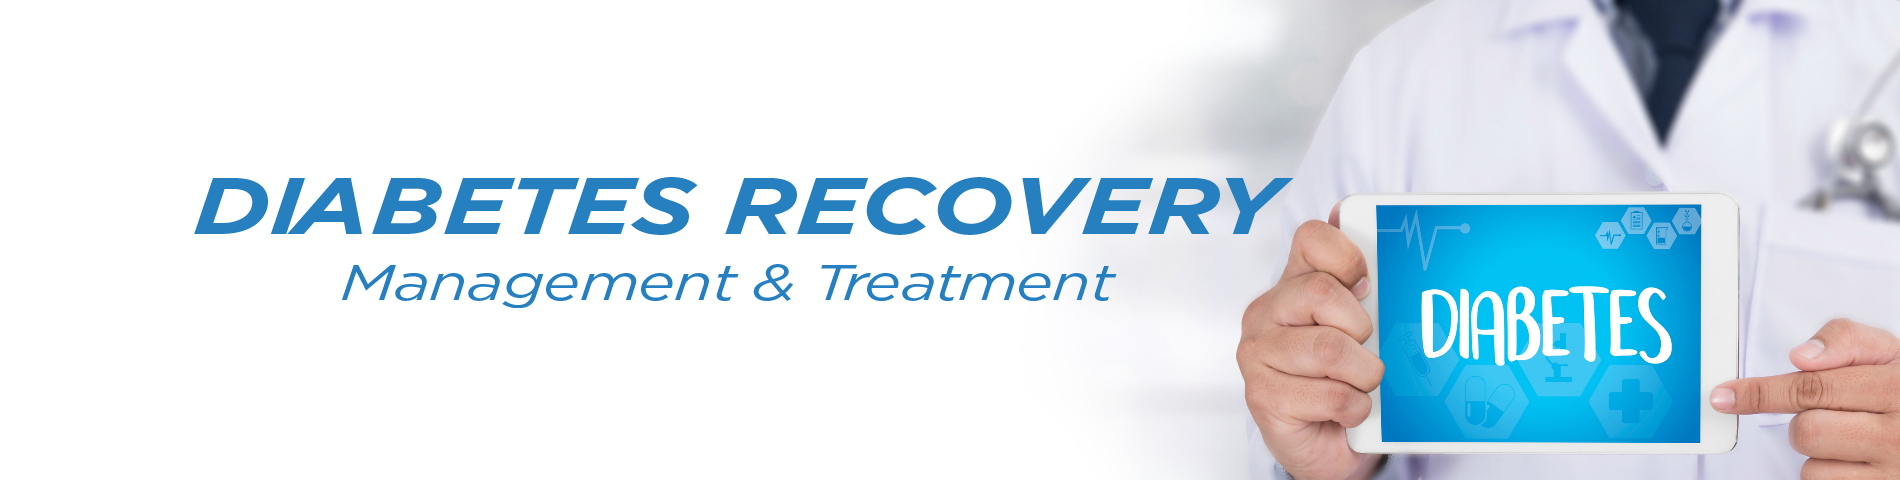 Diabetes Recovery